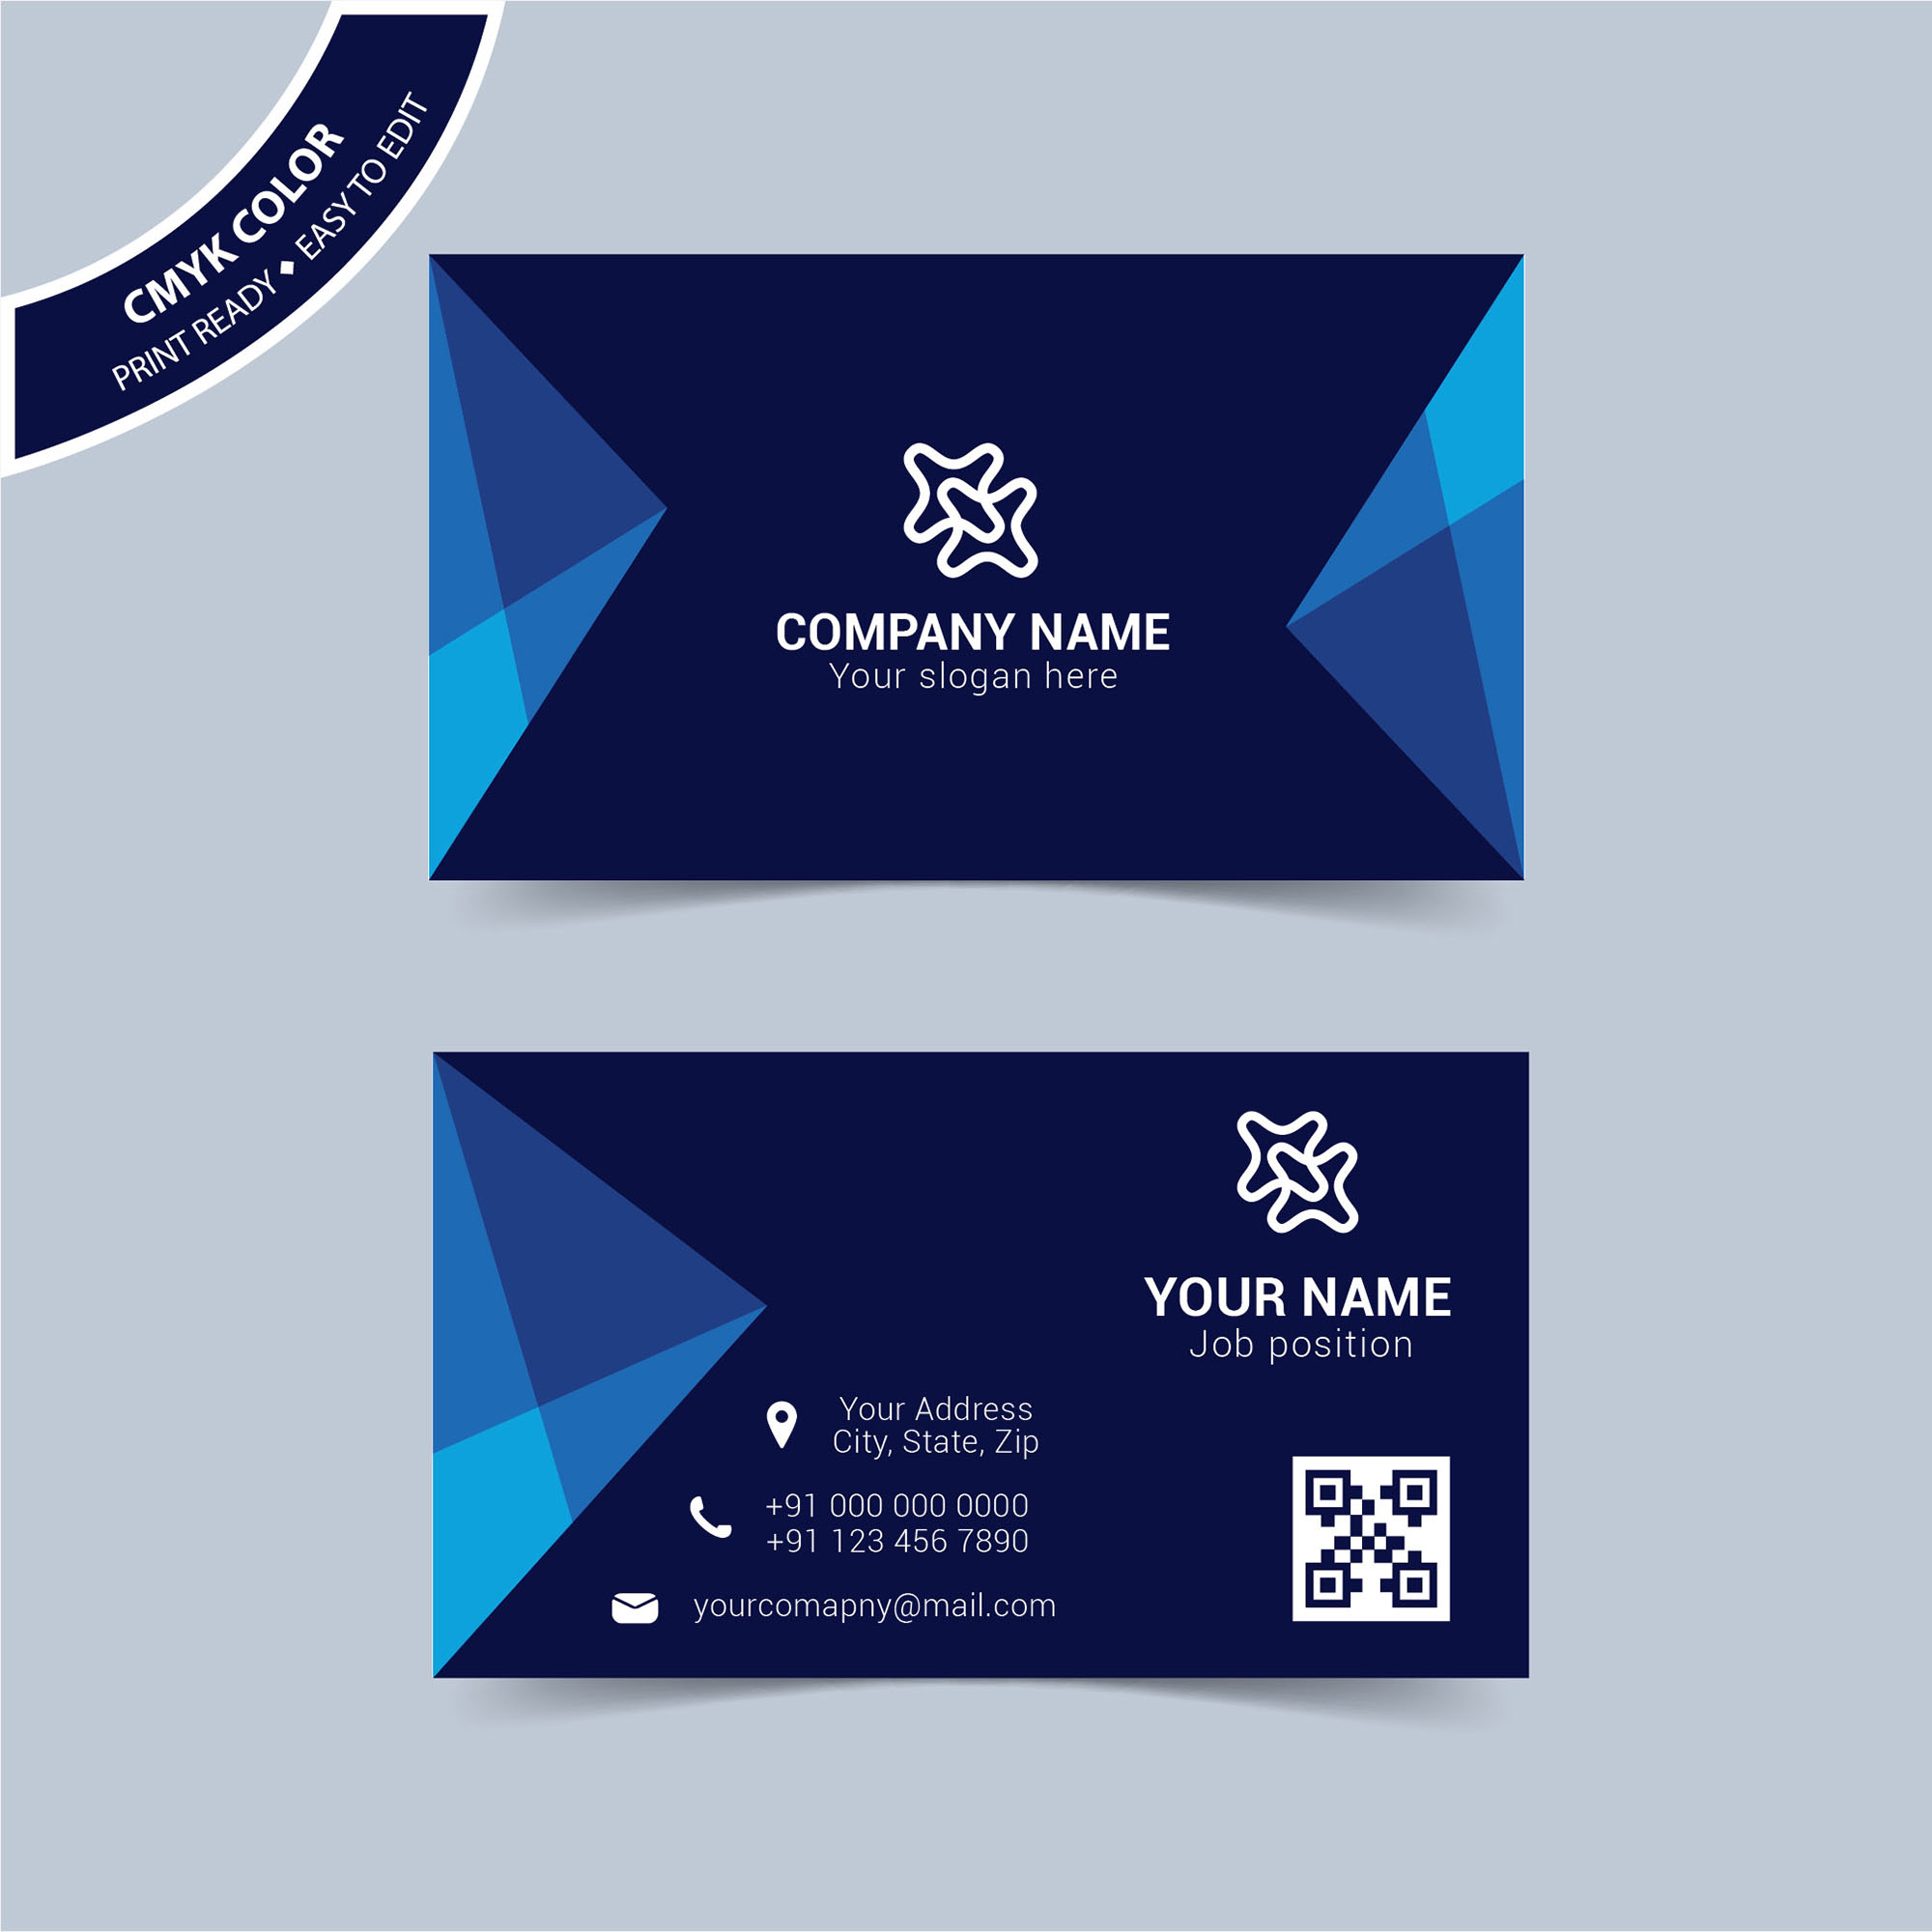 Modern blue business card template free download wisxi business card business cards business card design business card template design templates wajeb Choice Image